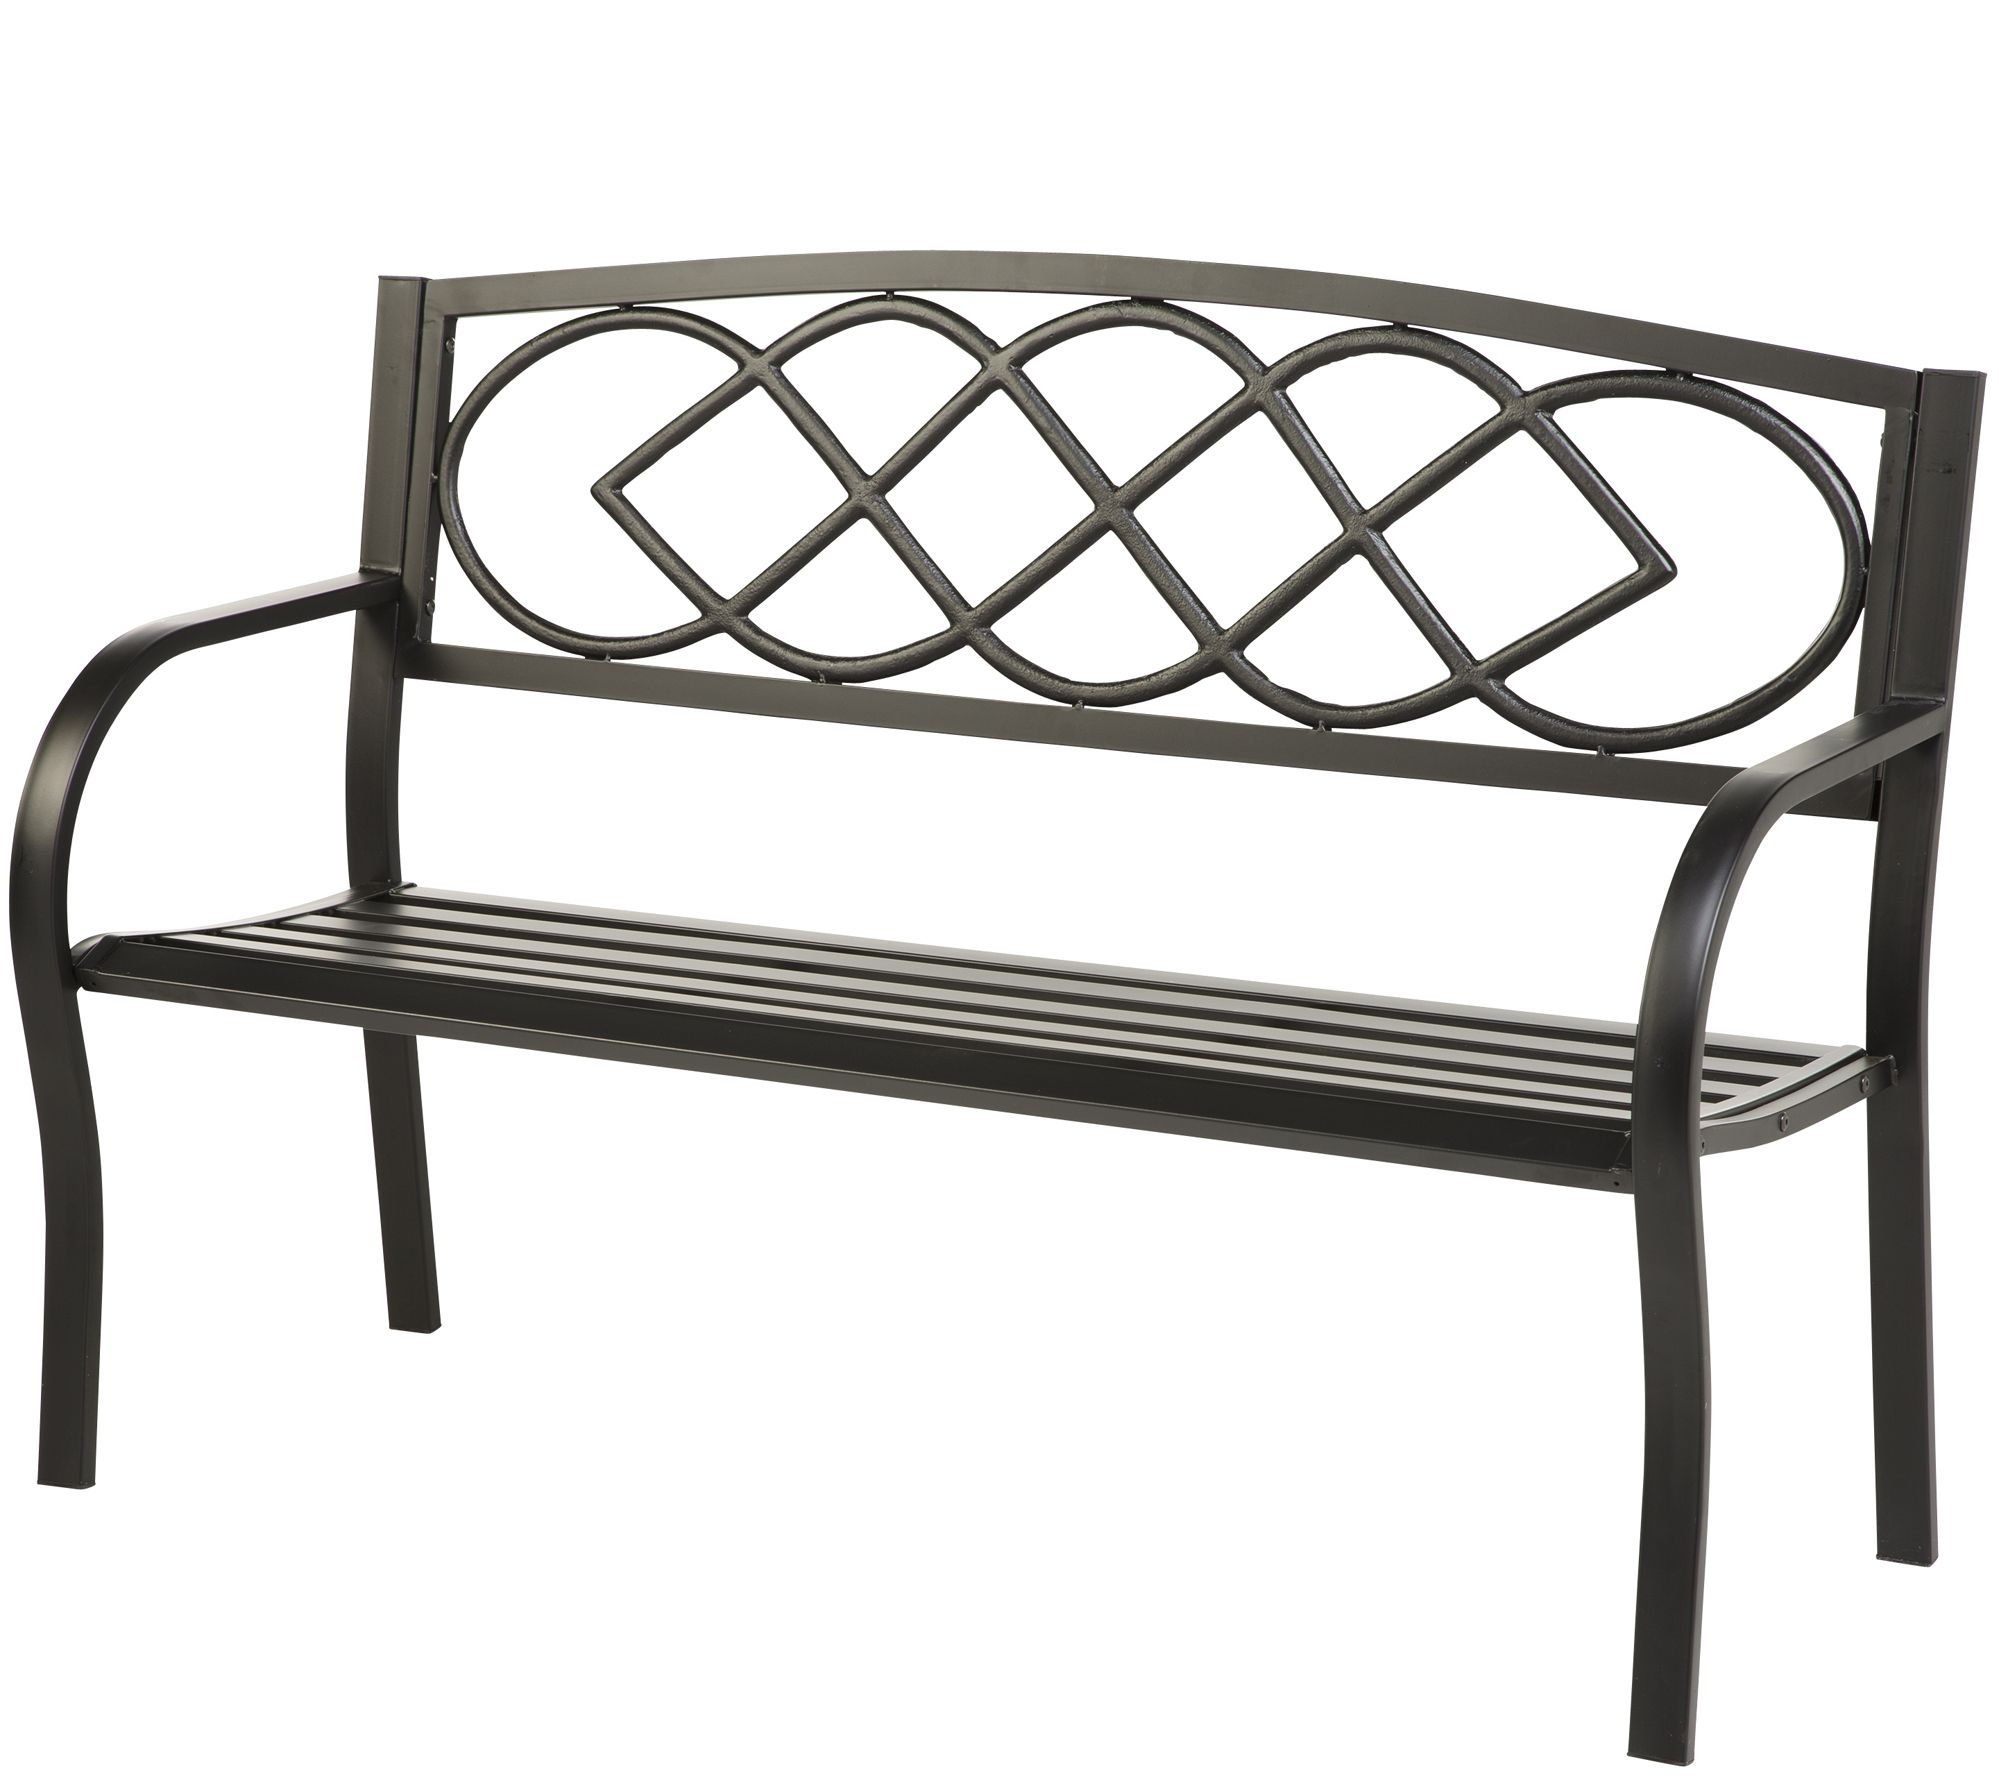 Hearth Bench: Plow & Hearth Celtic Knot Bench